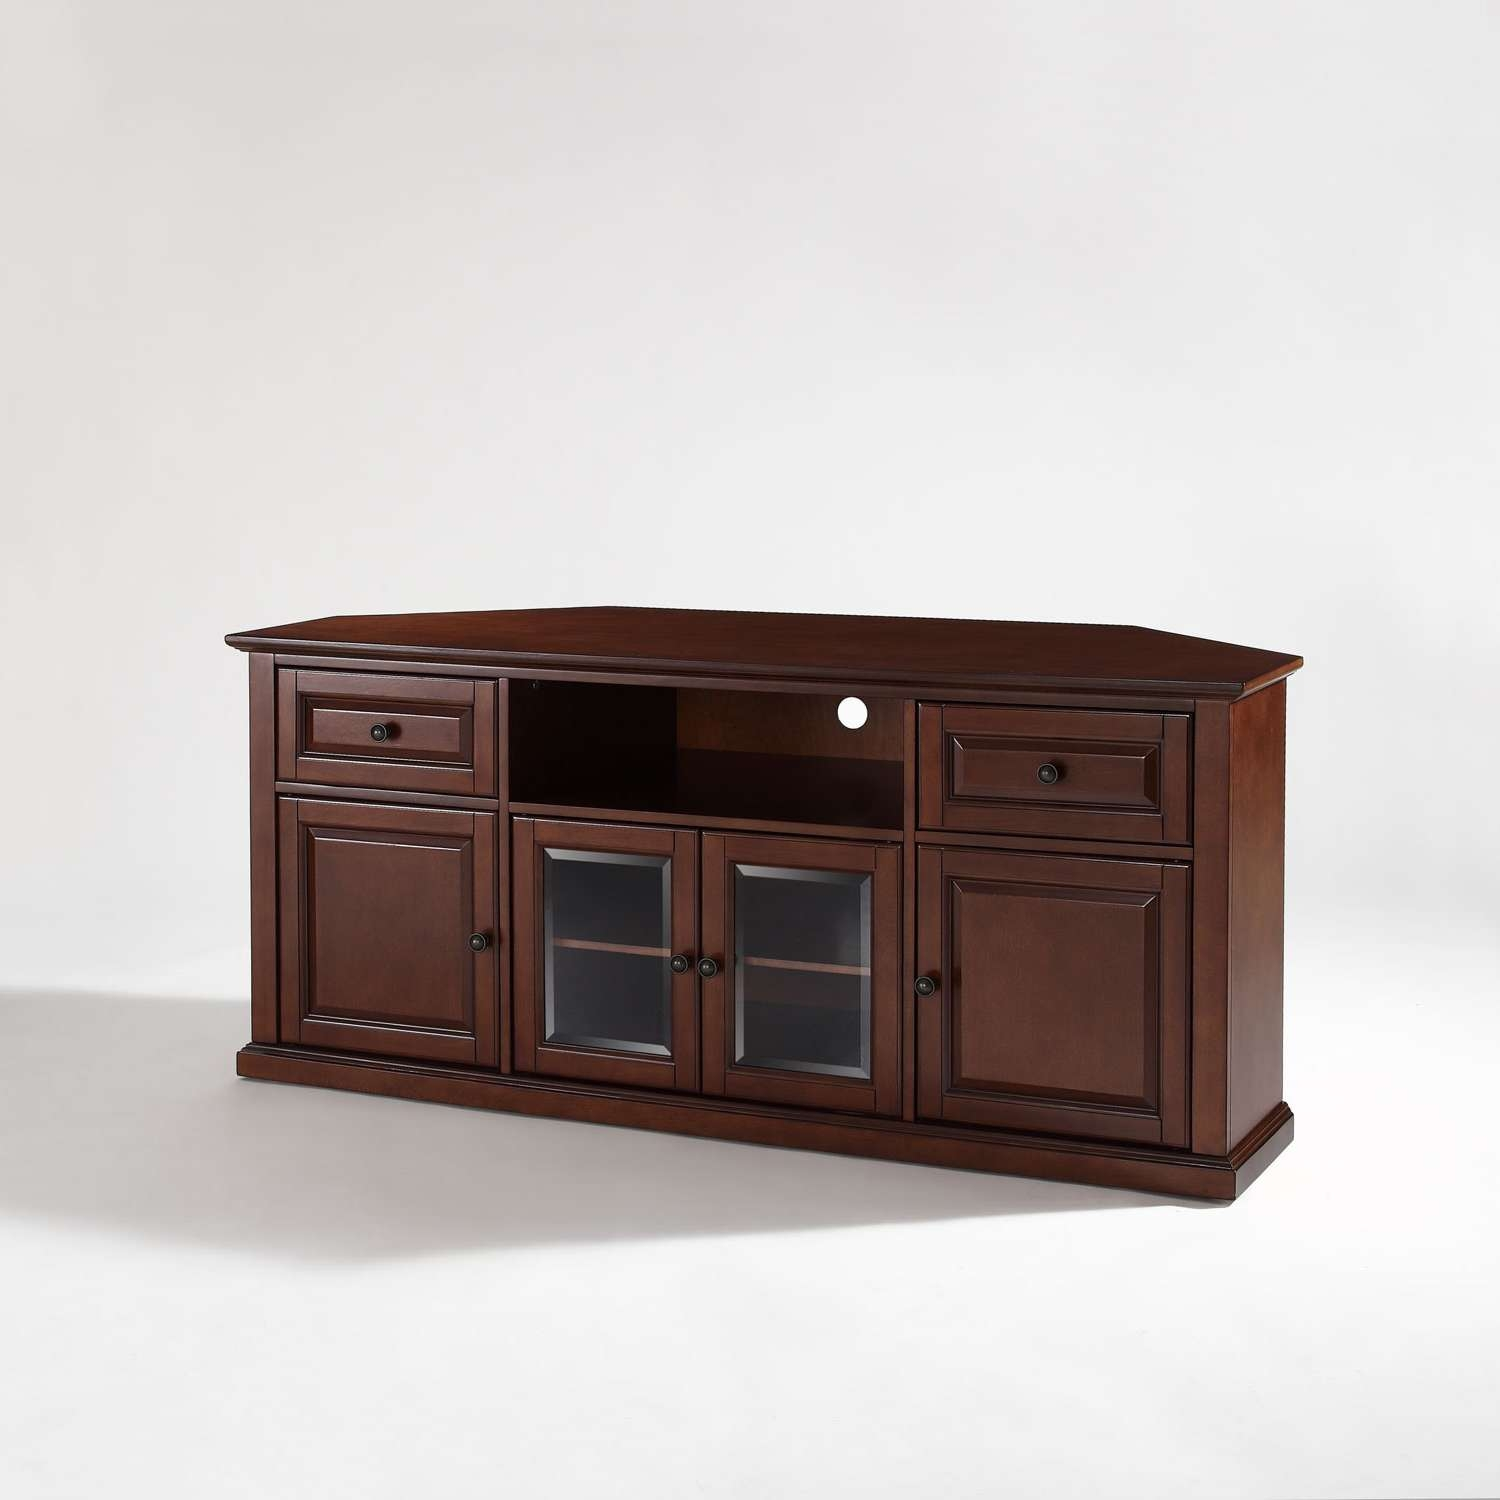 60 Inch Corner Tv Stand In Vintage Mahogany Crosley Furniture Pertaining To Tv Stands For 55 Inch Tv (View 1 of 15)